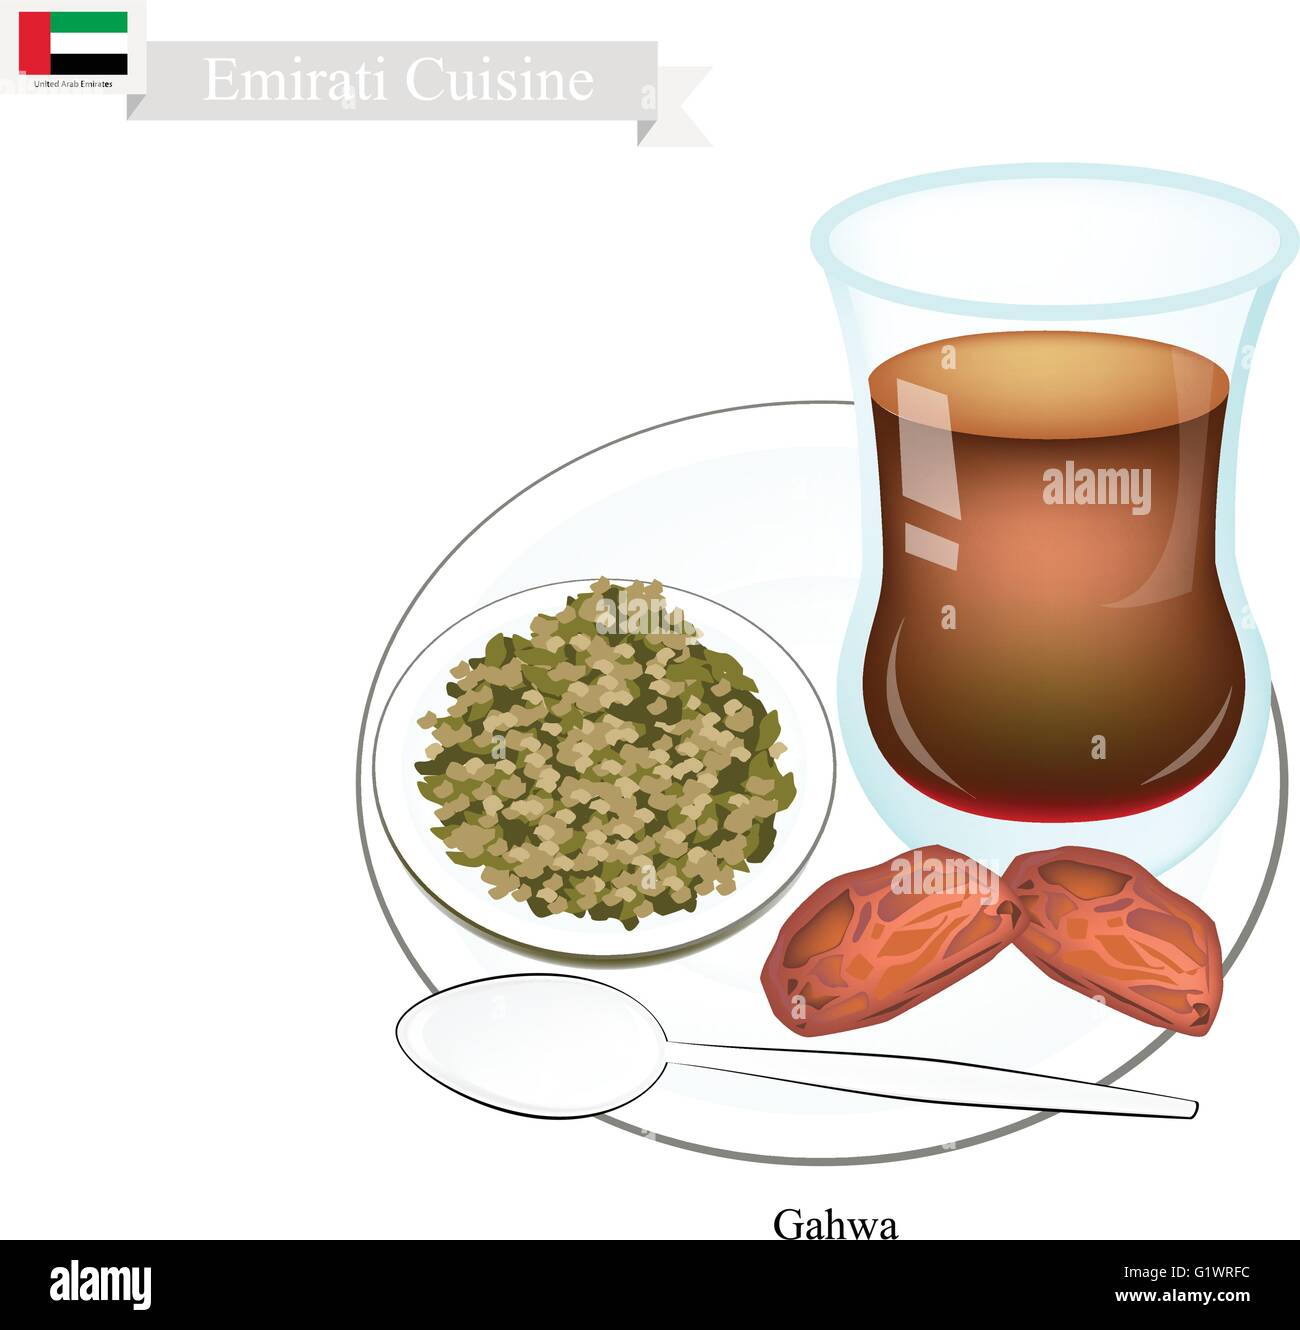 Emirati Cuisine, Gahwa Coffee or Coffee Brewed from Dark Roast Coffee Beans Spiced with Cardamom. One of The Popular - Stock Vector